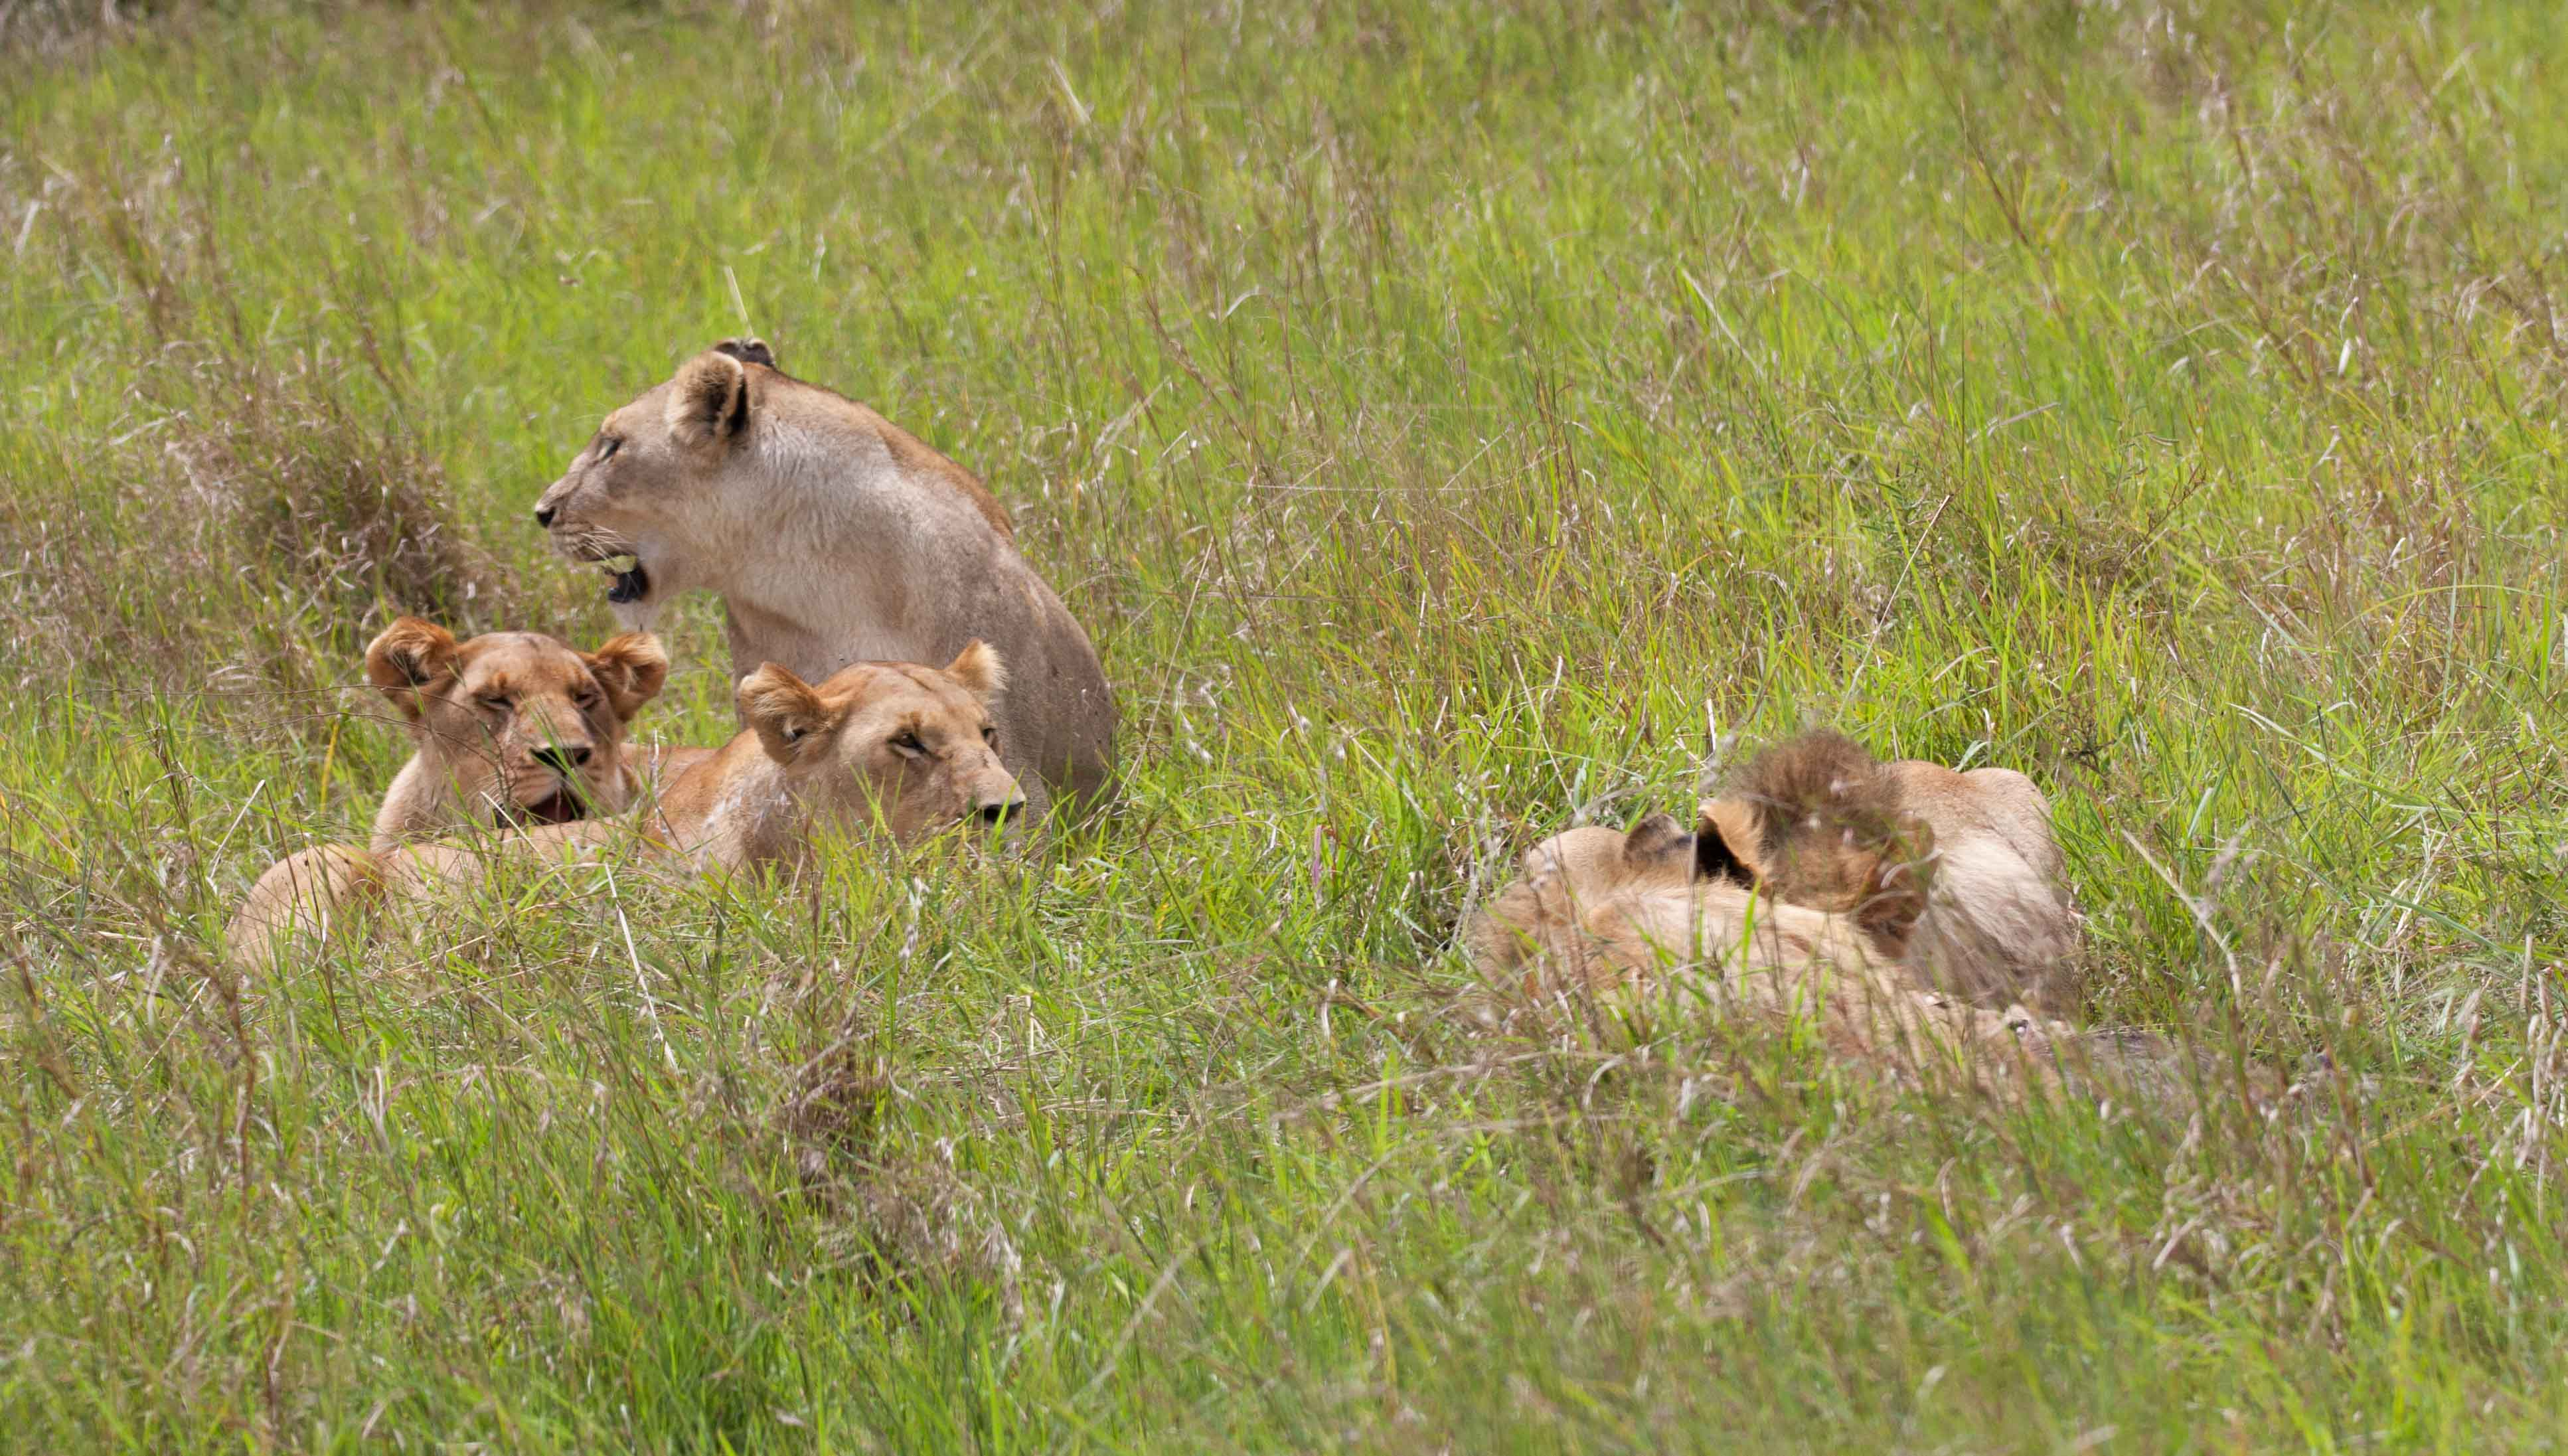 But catch him she does. Once the female lions catch the warthog, the male lions come in and finish him off.